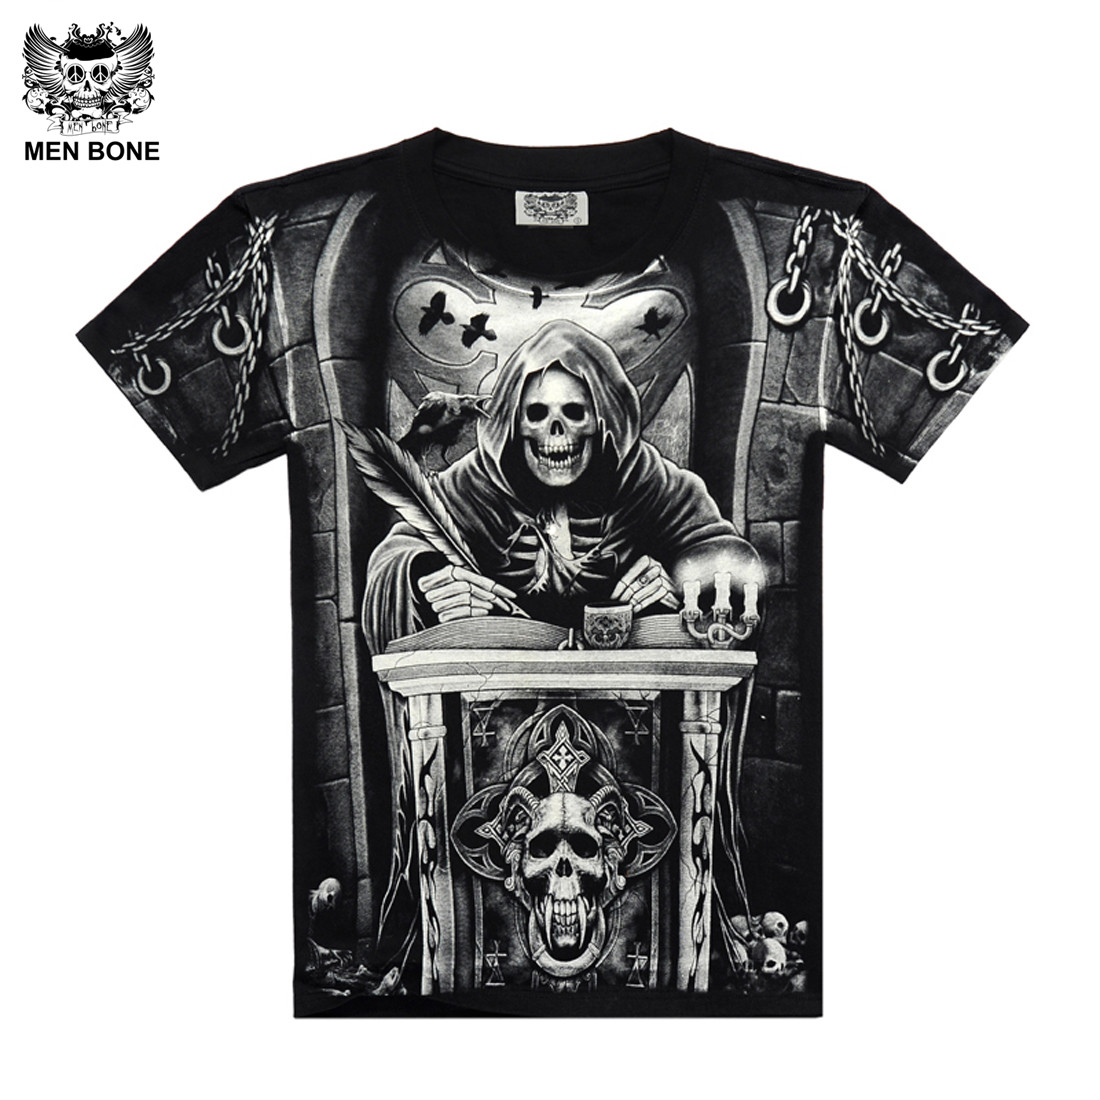 [Men bone] Heavy Metal Style onverbiddelijke Reaper skull Tshirt zwart Zwart Print shirt Hip Hop street rock heavy metal mouw